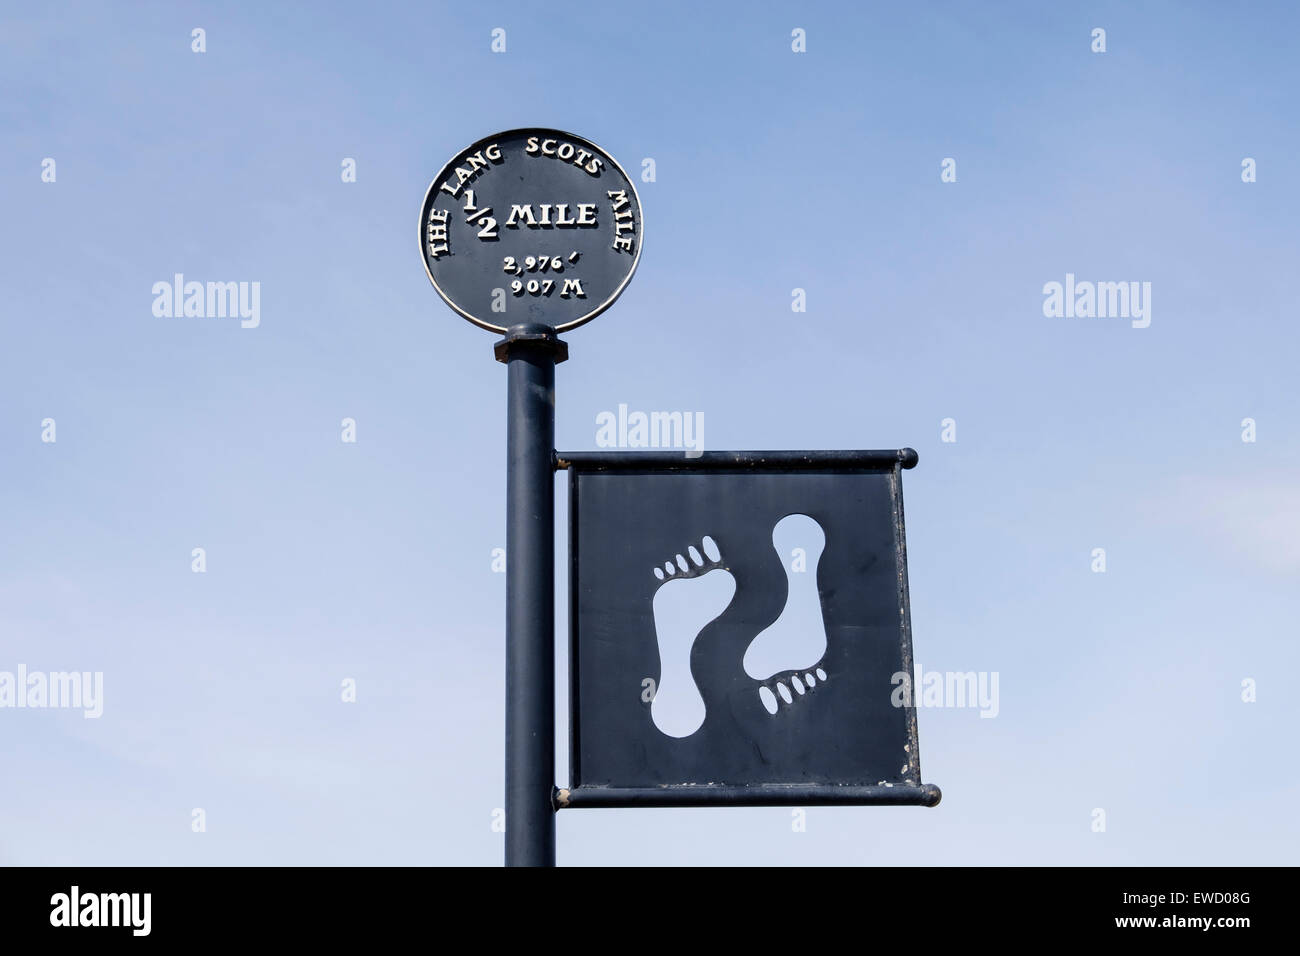 The Lang Scots Mile sign at half way point on seafront promenade in Ayr, South Ayrshire, Strathclyde, Scotland, - Stock Image